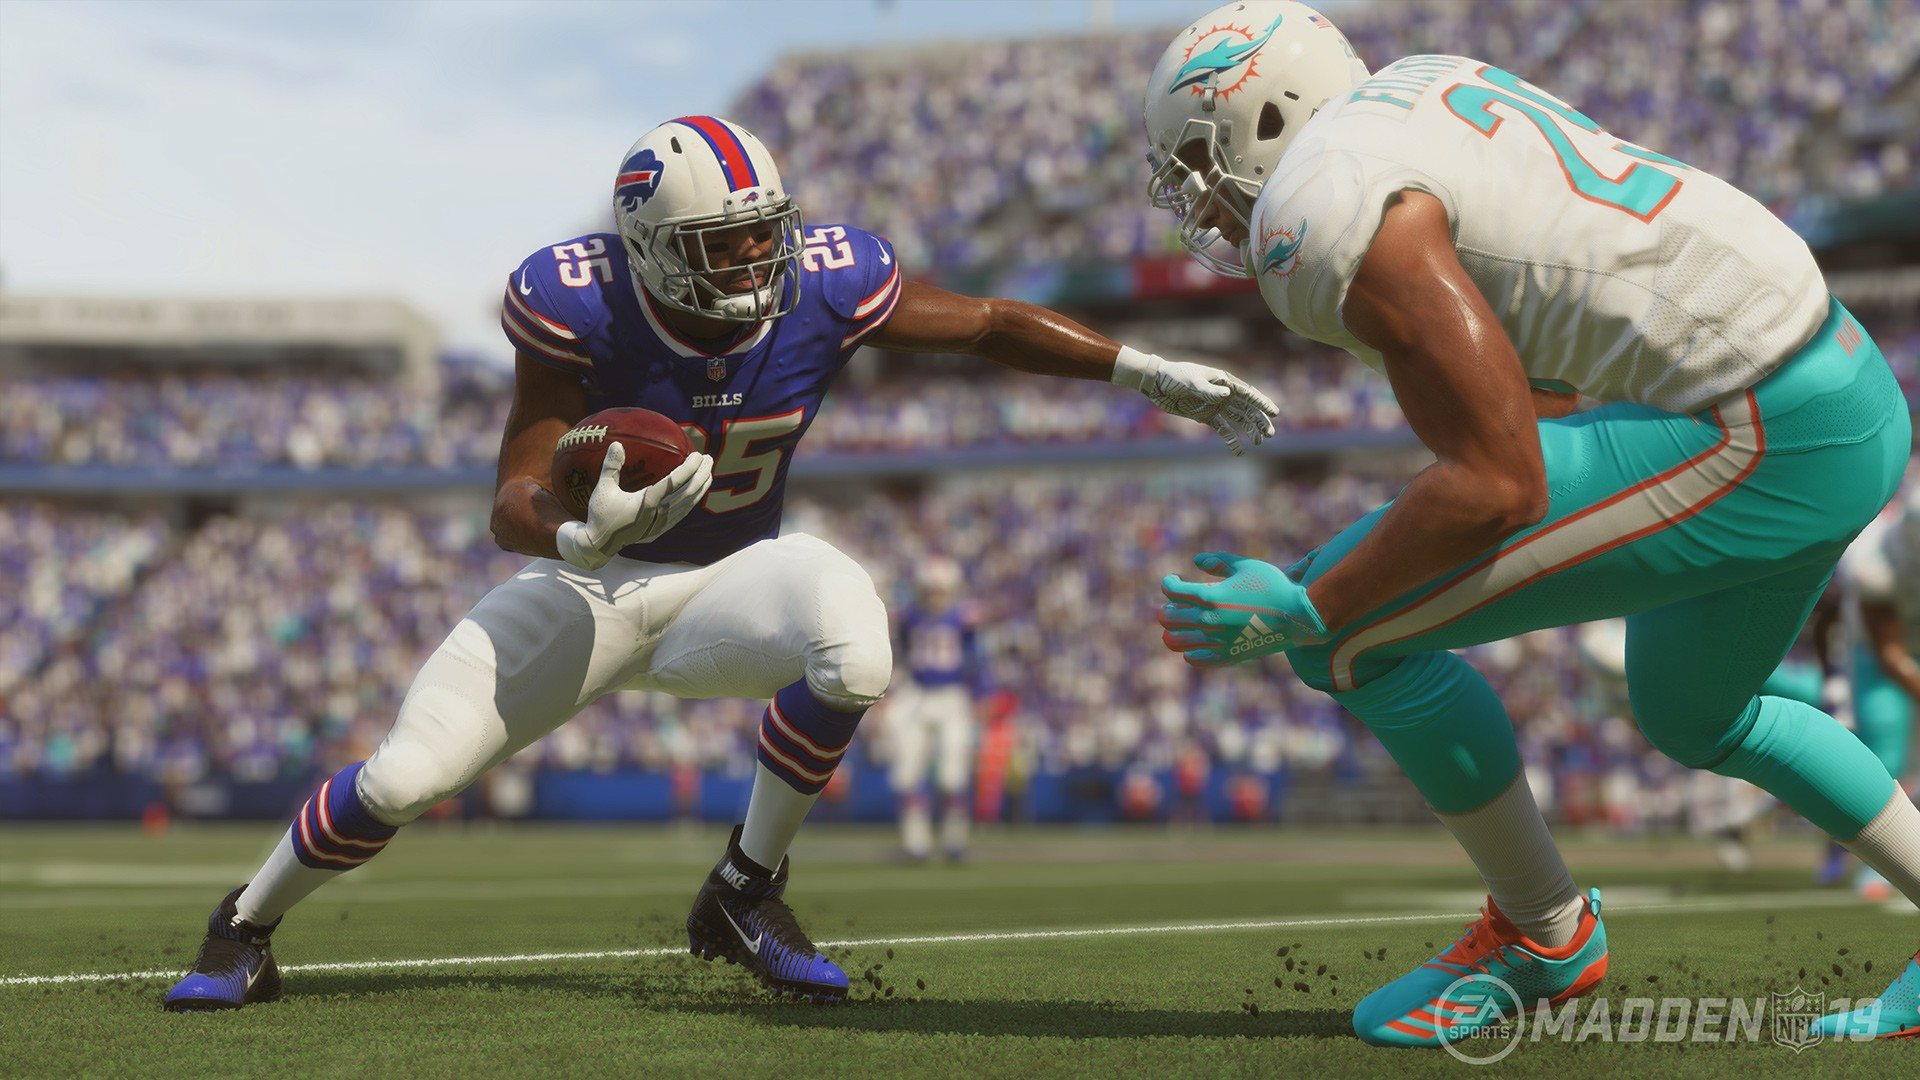 Madden hall of fame edition pc | Buy Madden NFL 19: Hall of Fame